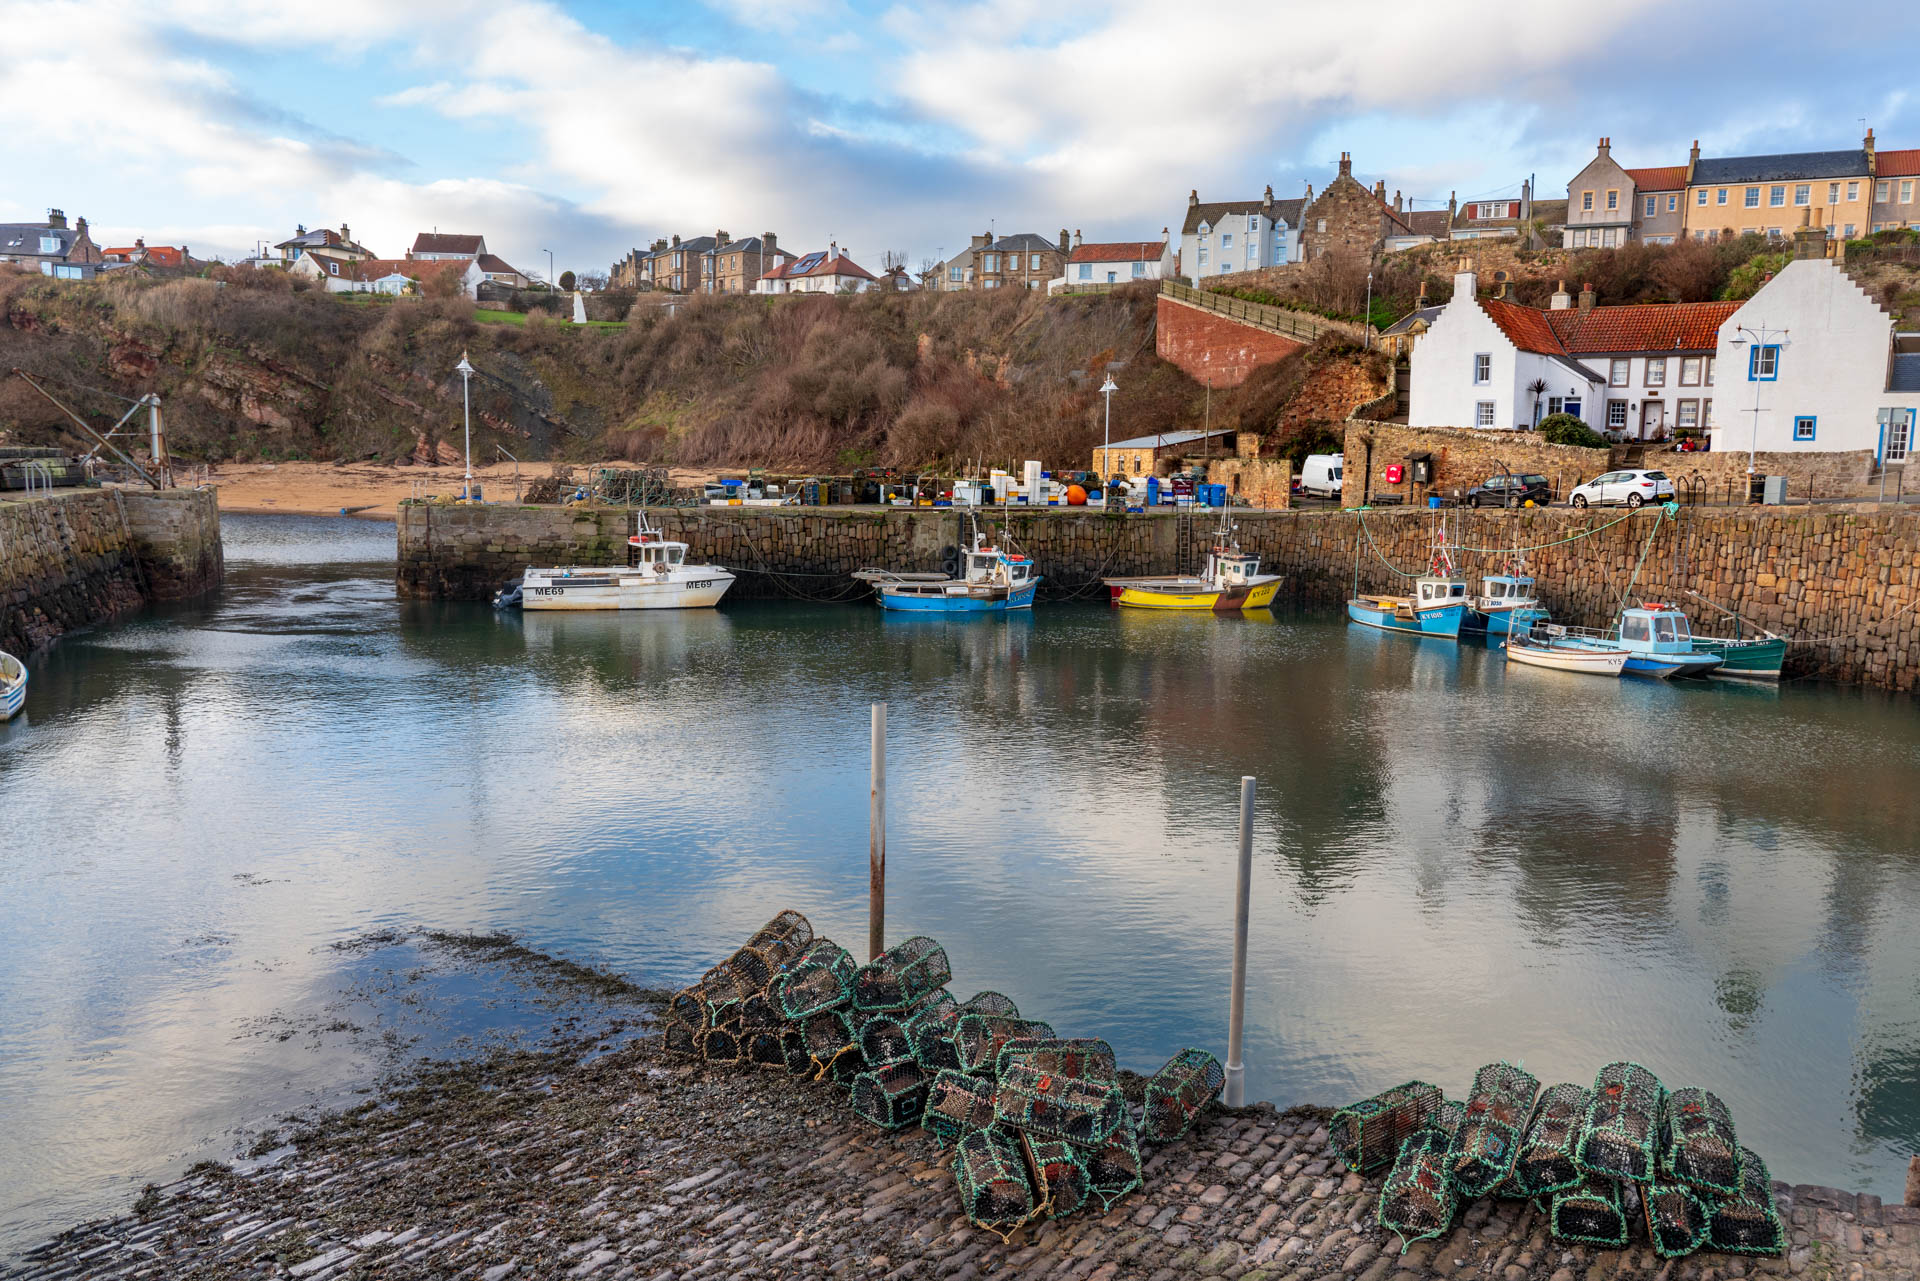 Crail harbour and seafood cages | f/11 1/30sec ISO-200 24mm